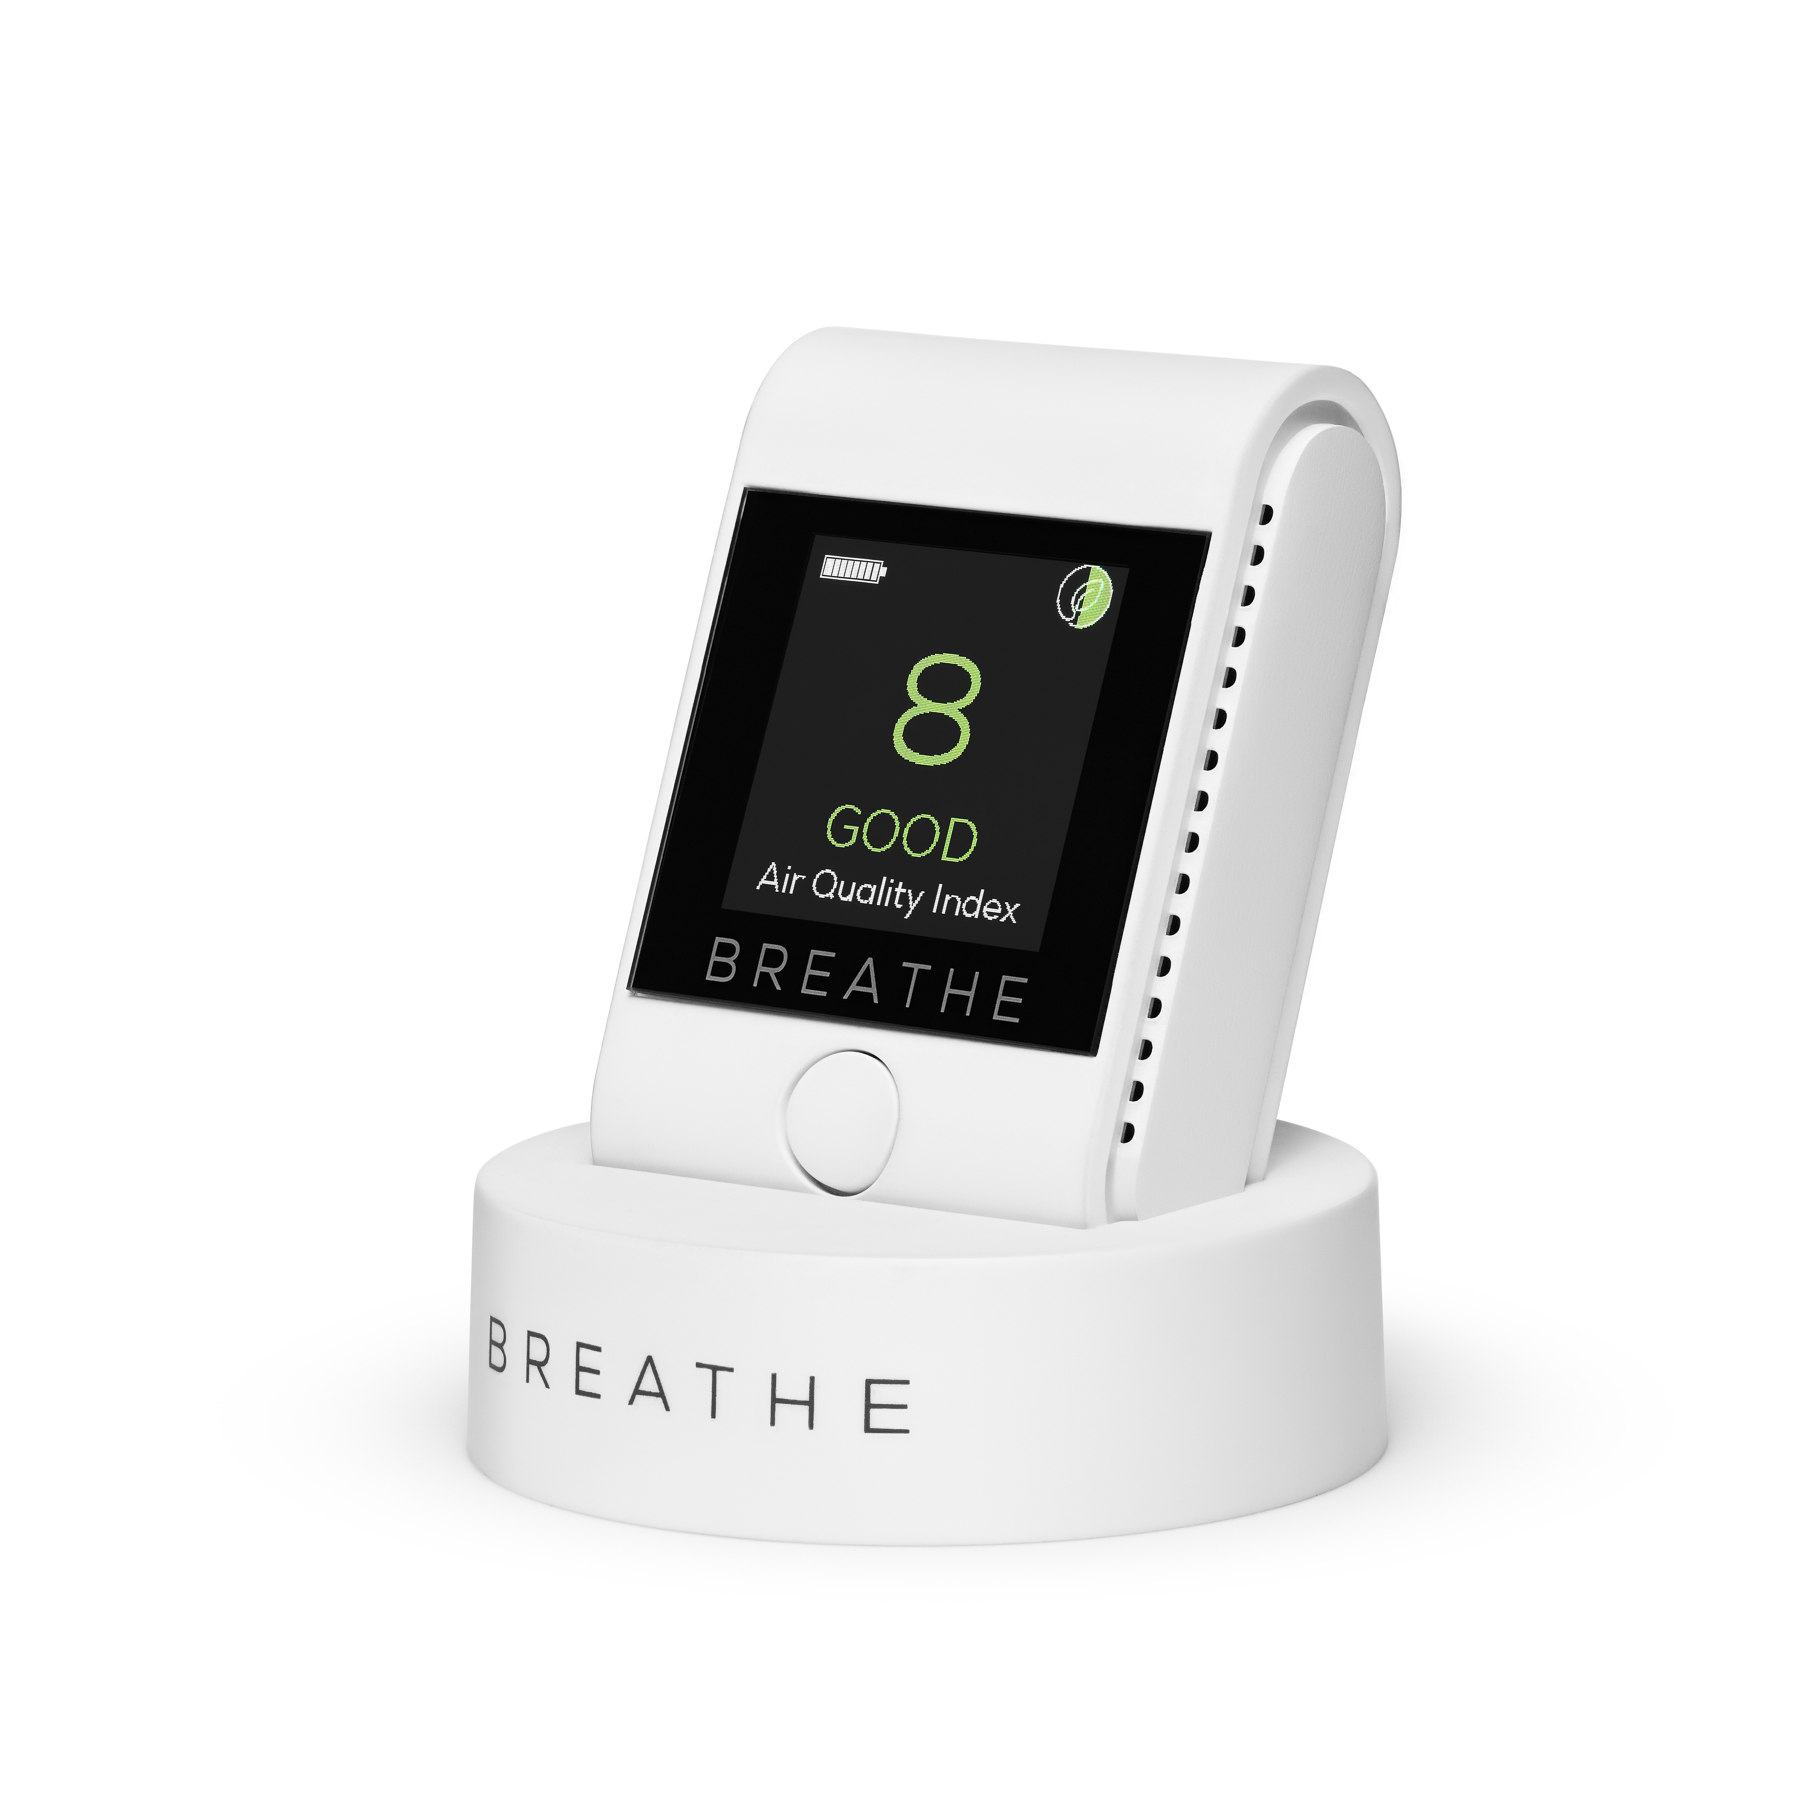 BREATHE Smart air quality monitor front angle.jpg